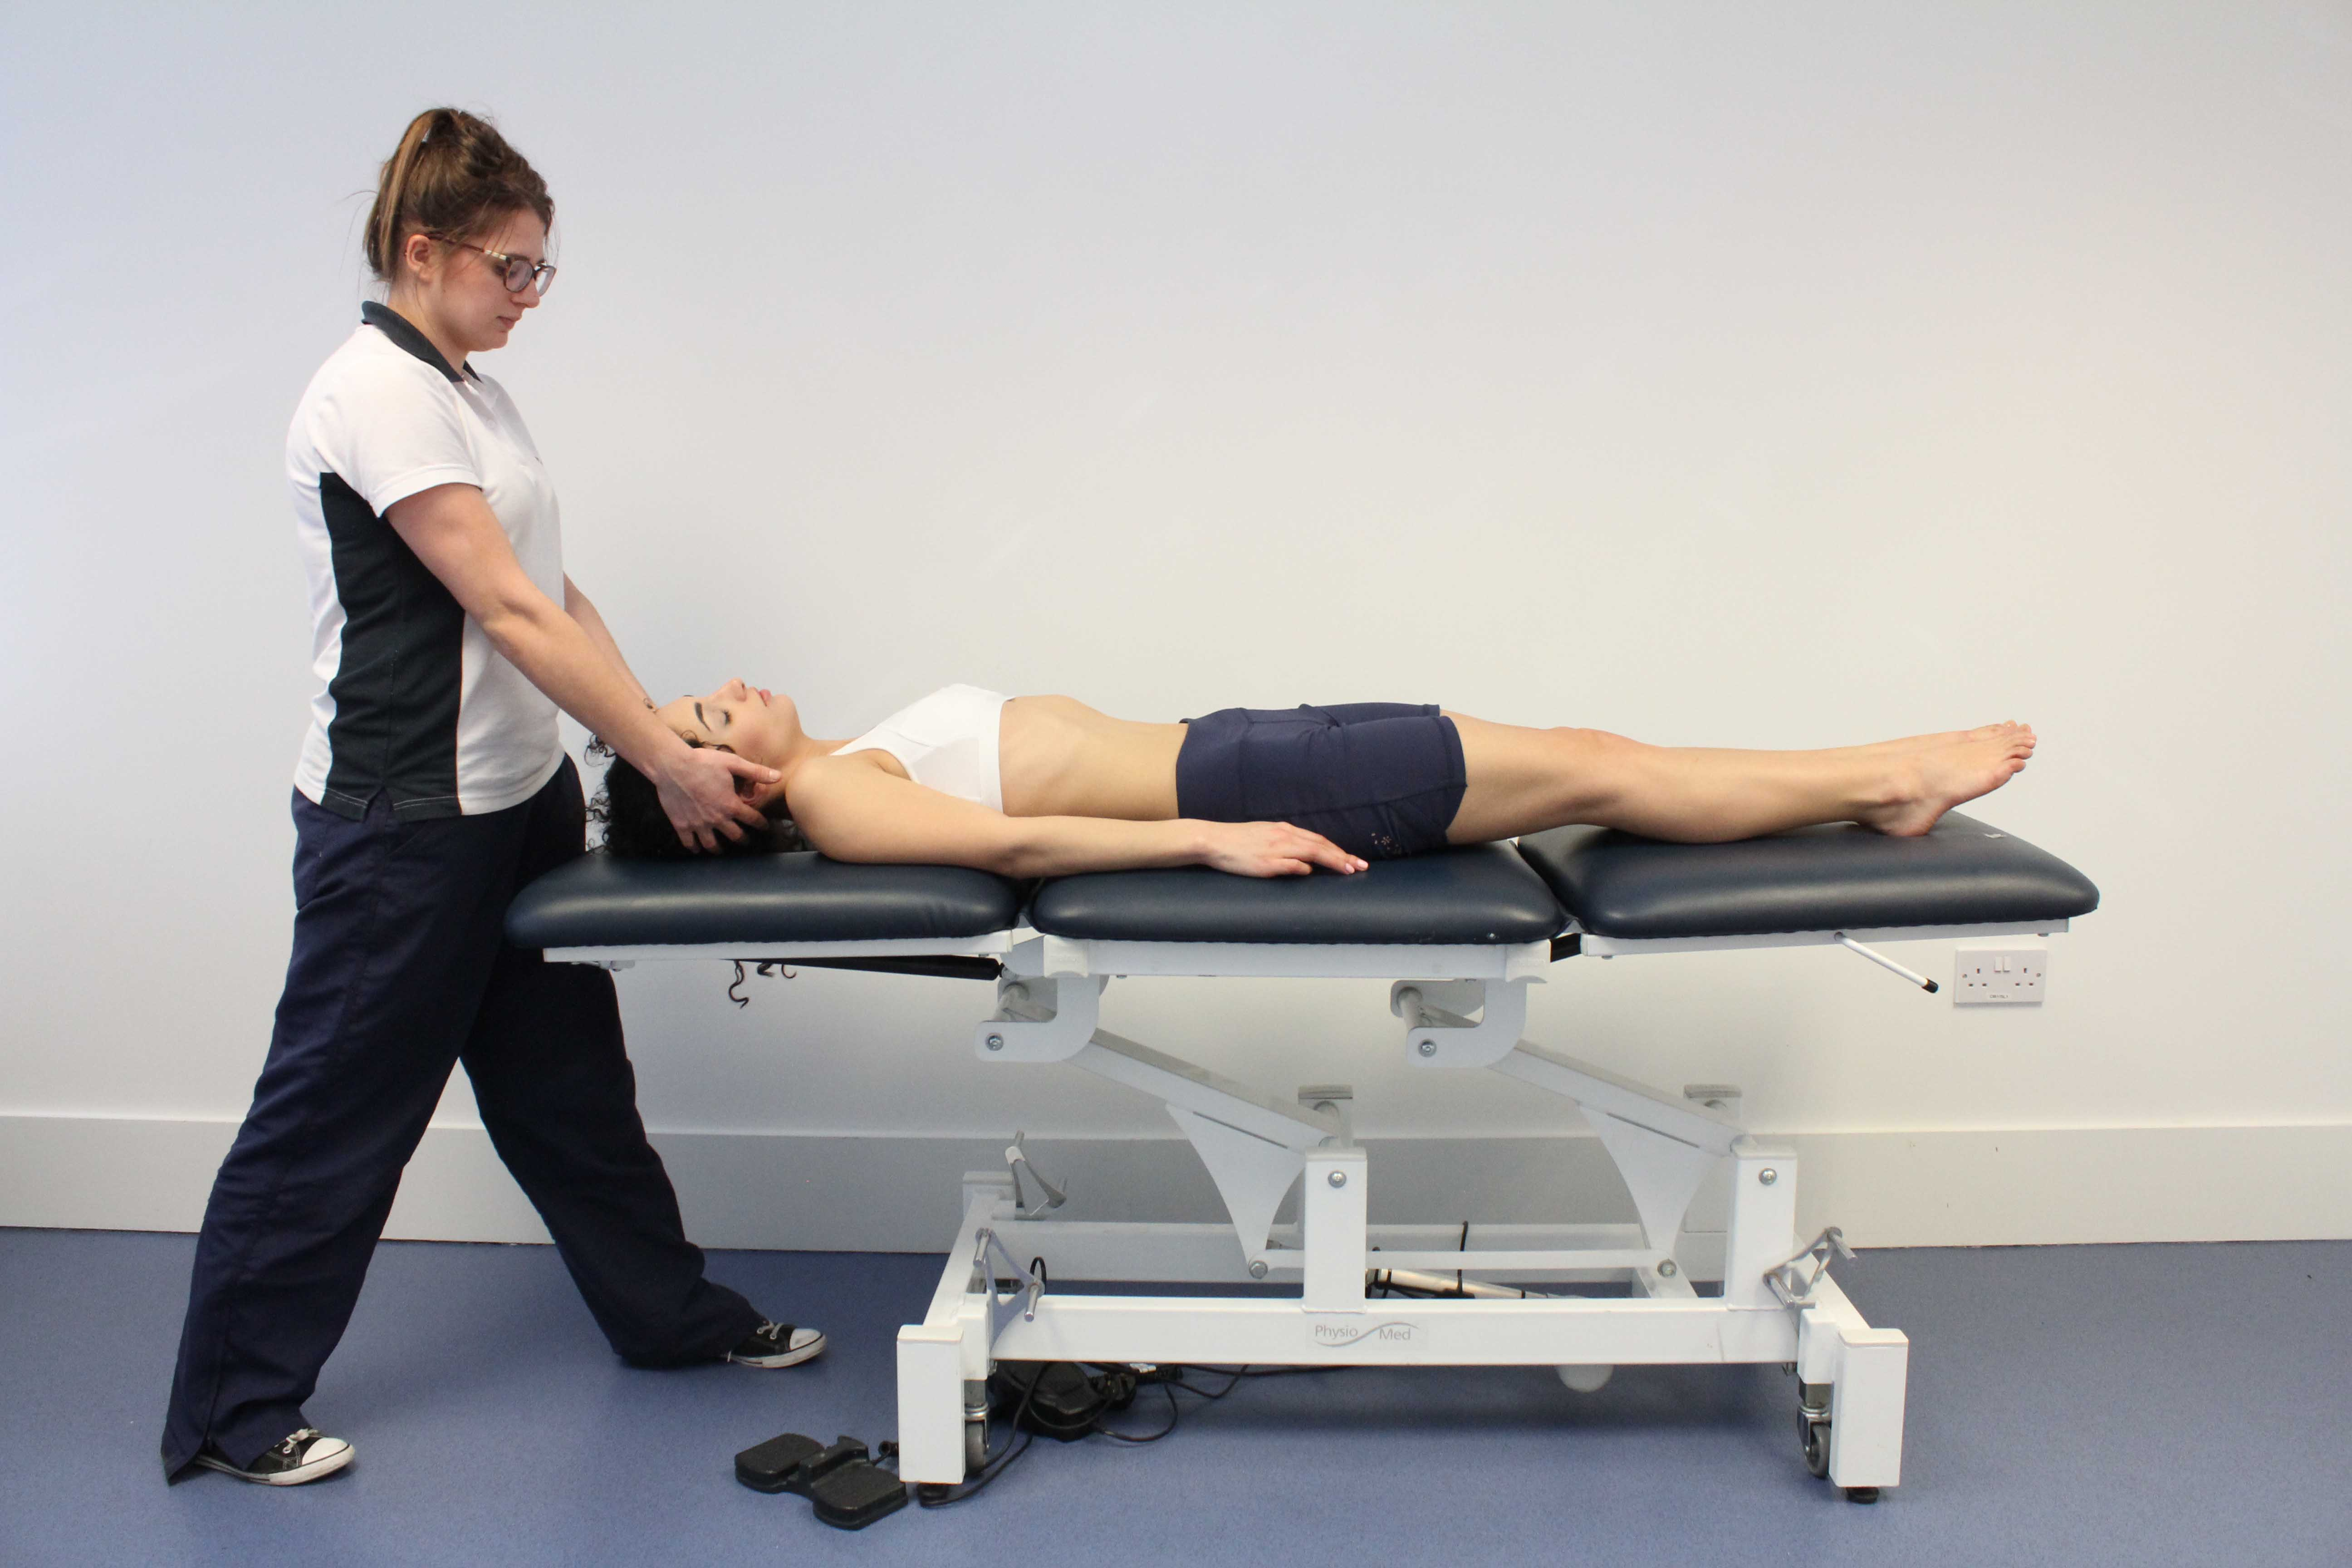 Chopping percussion massage applied to the upper back